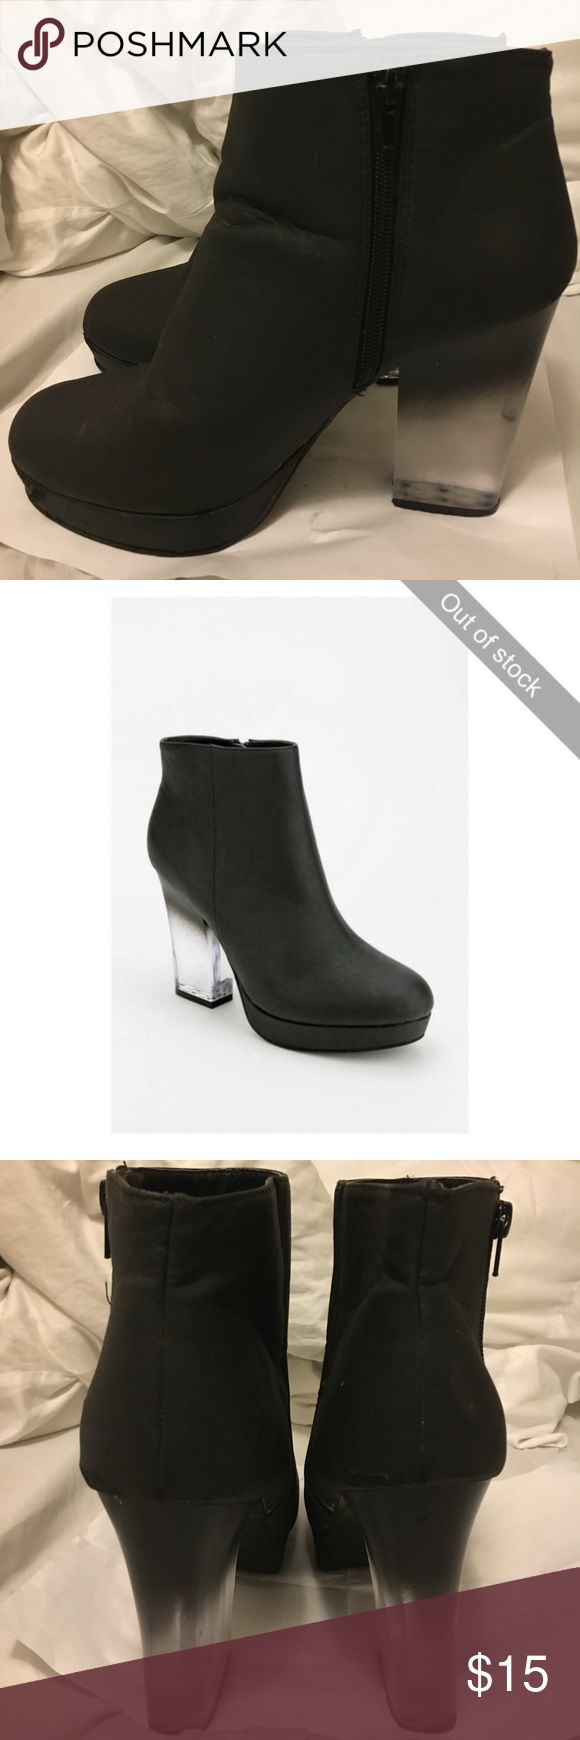 Deena & Ozzy Platform Ombré Bootie Details in the last pic! Awesome trendy heel. Signs of wear hence price adjustment!!! Urban Outfitters Shoes Ankle Boots & Booties